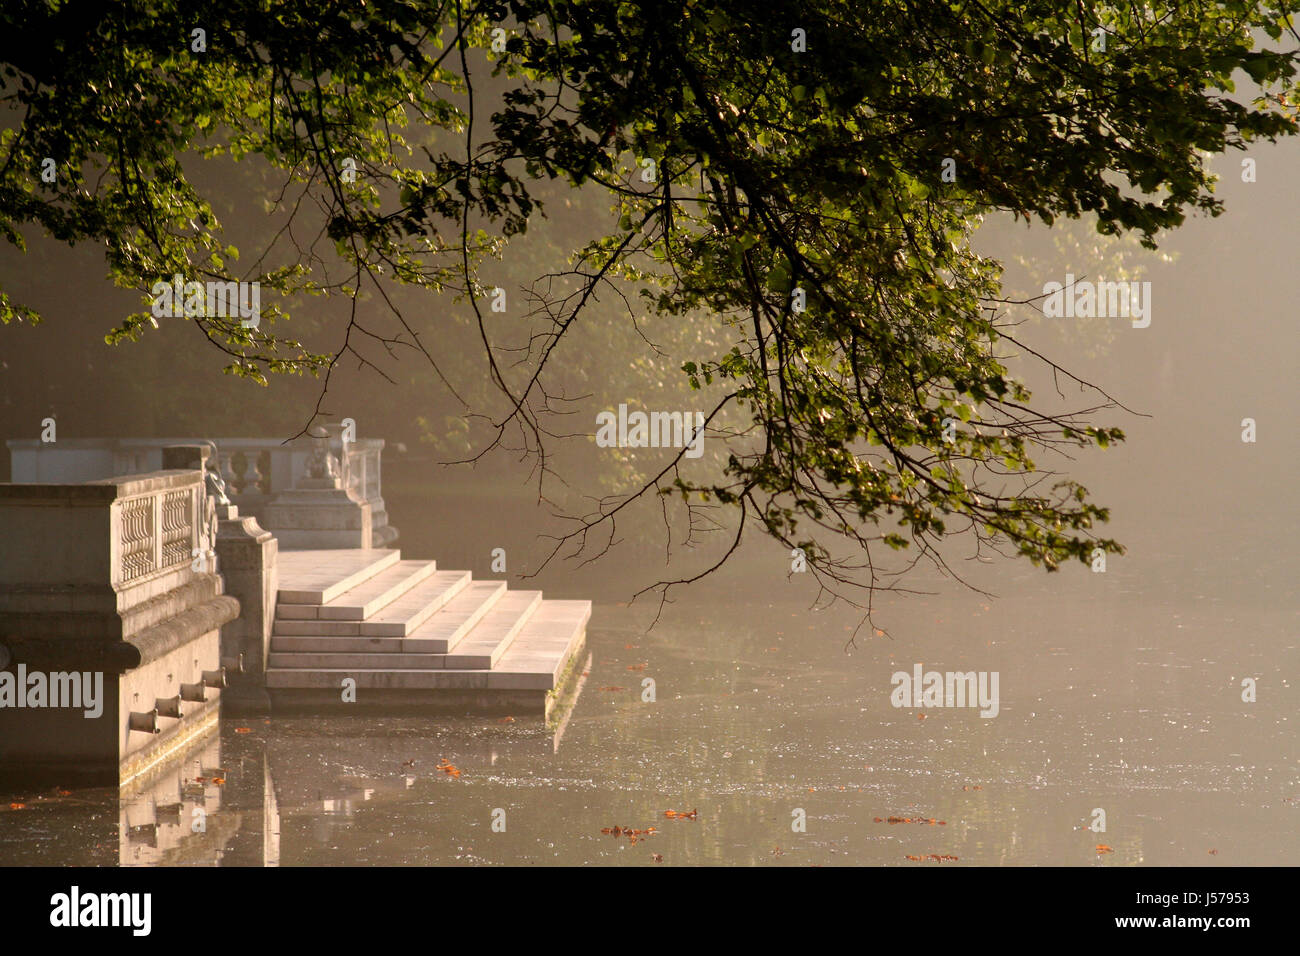 stairs tree park leaves branches parkway late summer water fall autumn steps Stock Photo